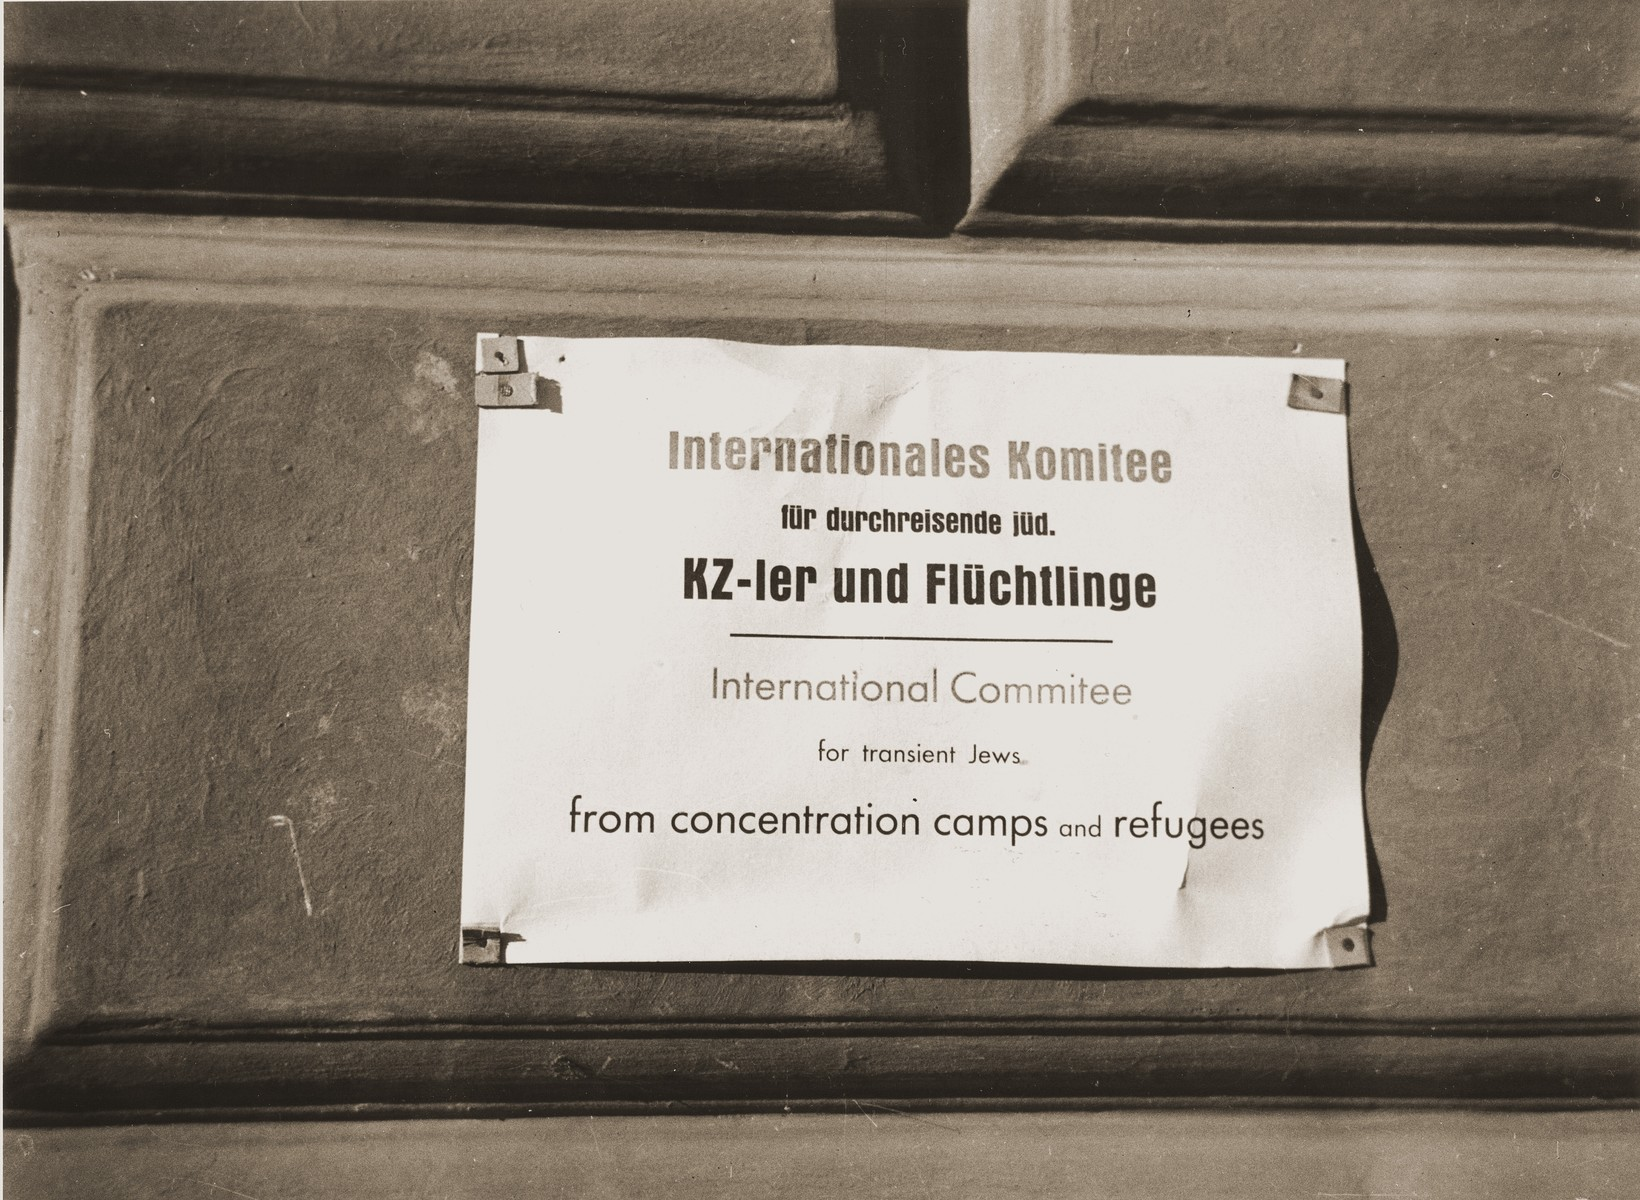 A sign posted on the entrance to the Rothschild Hospital DP camp identifying its affiliation with the International Committee for Transient Jews.